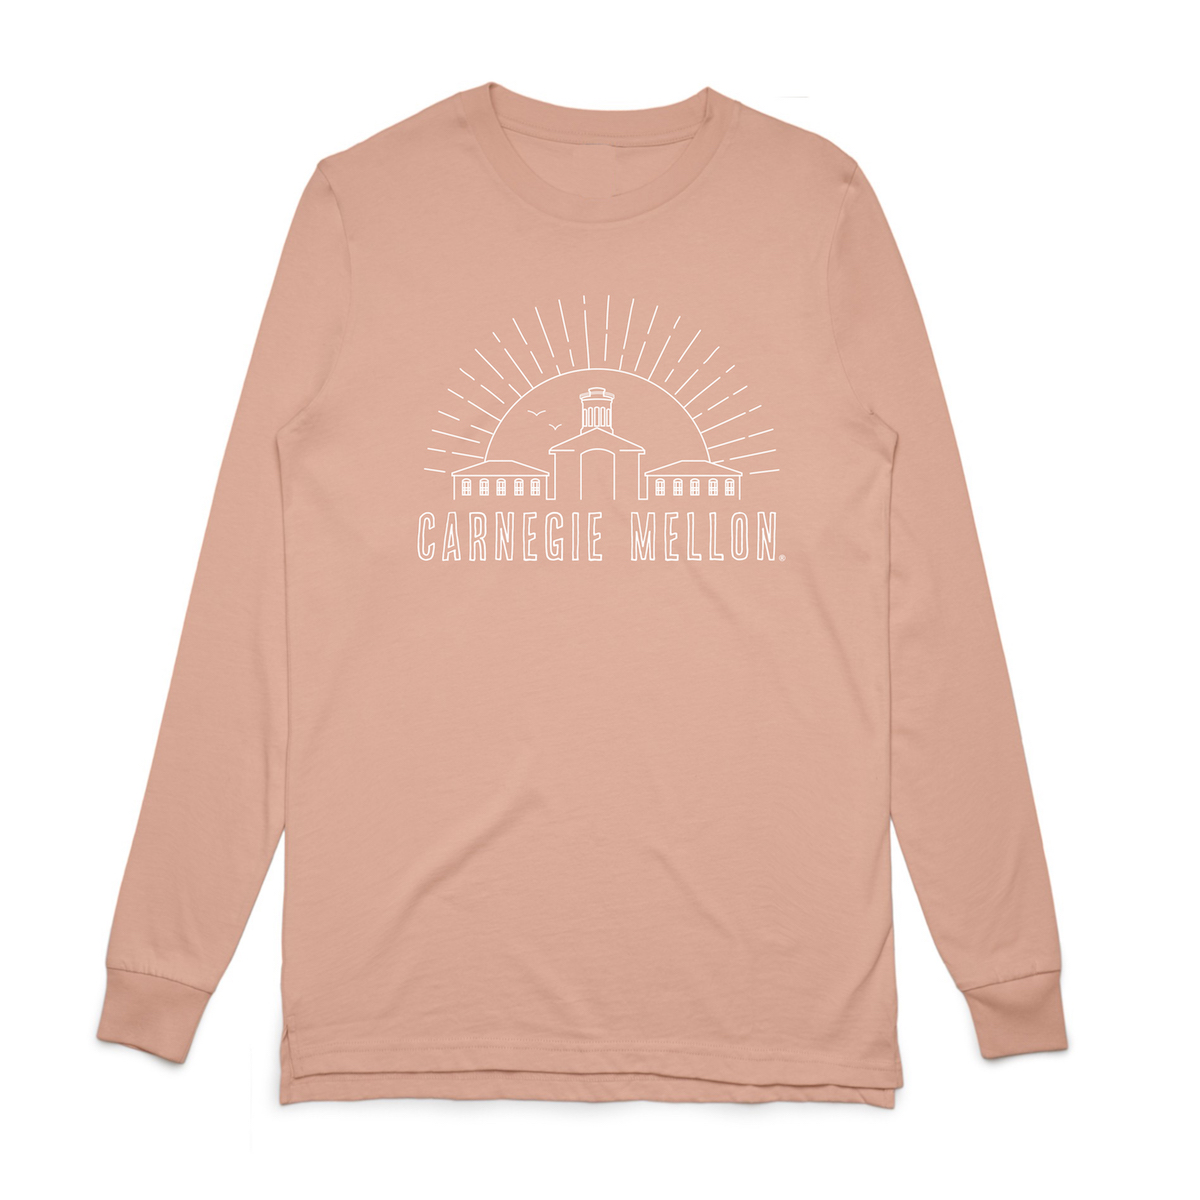 Skyline Long Sleeve Tee: Pink